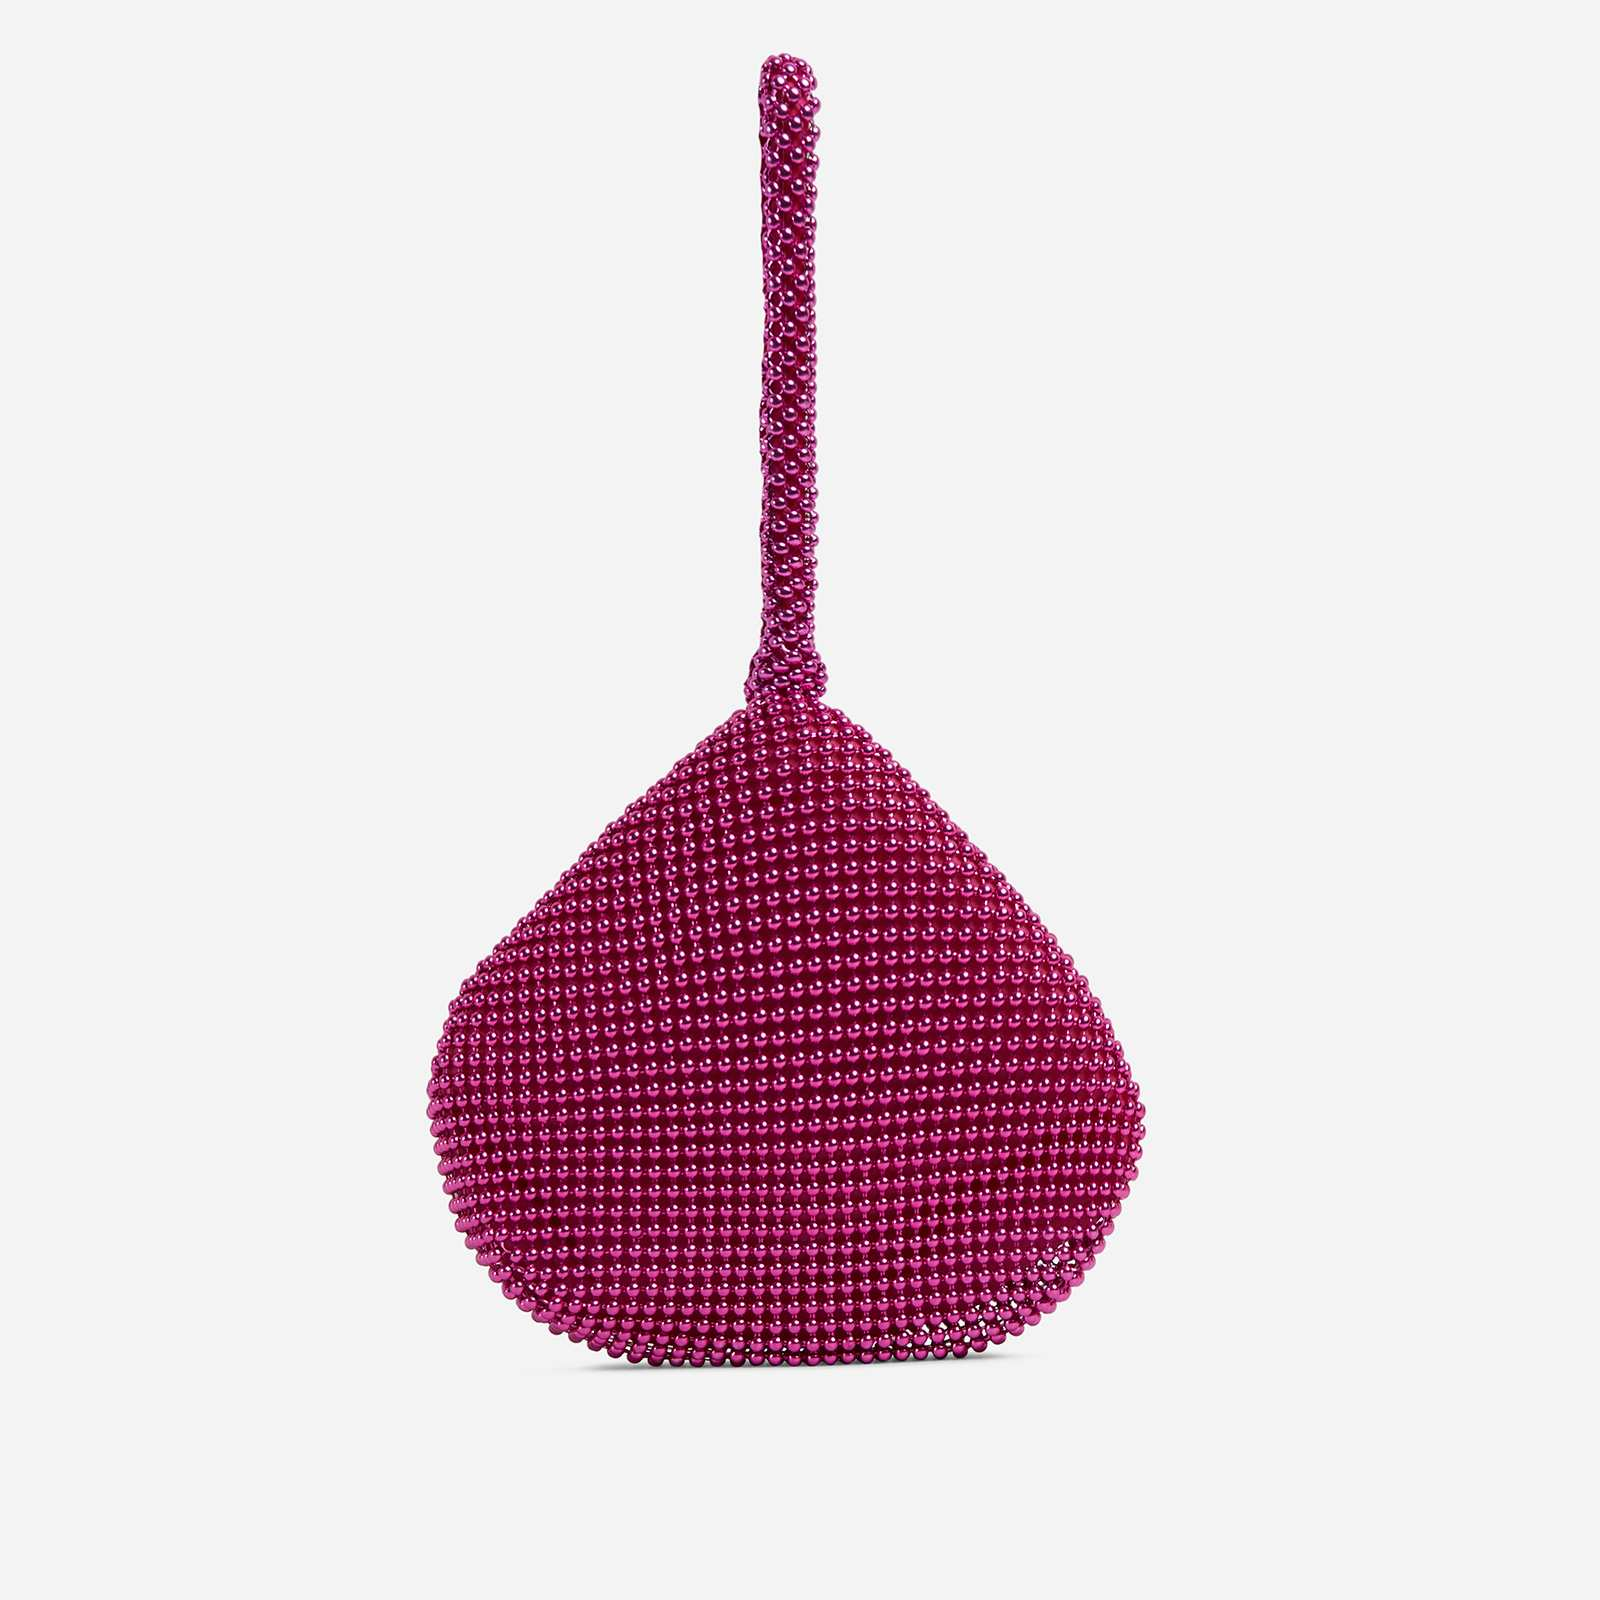 Malaga Pyramid Grab Bag In Pink Beads